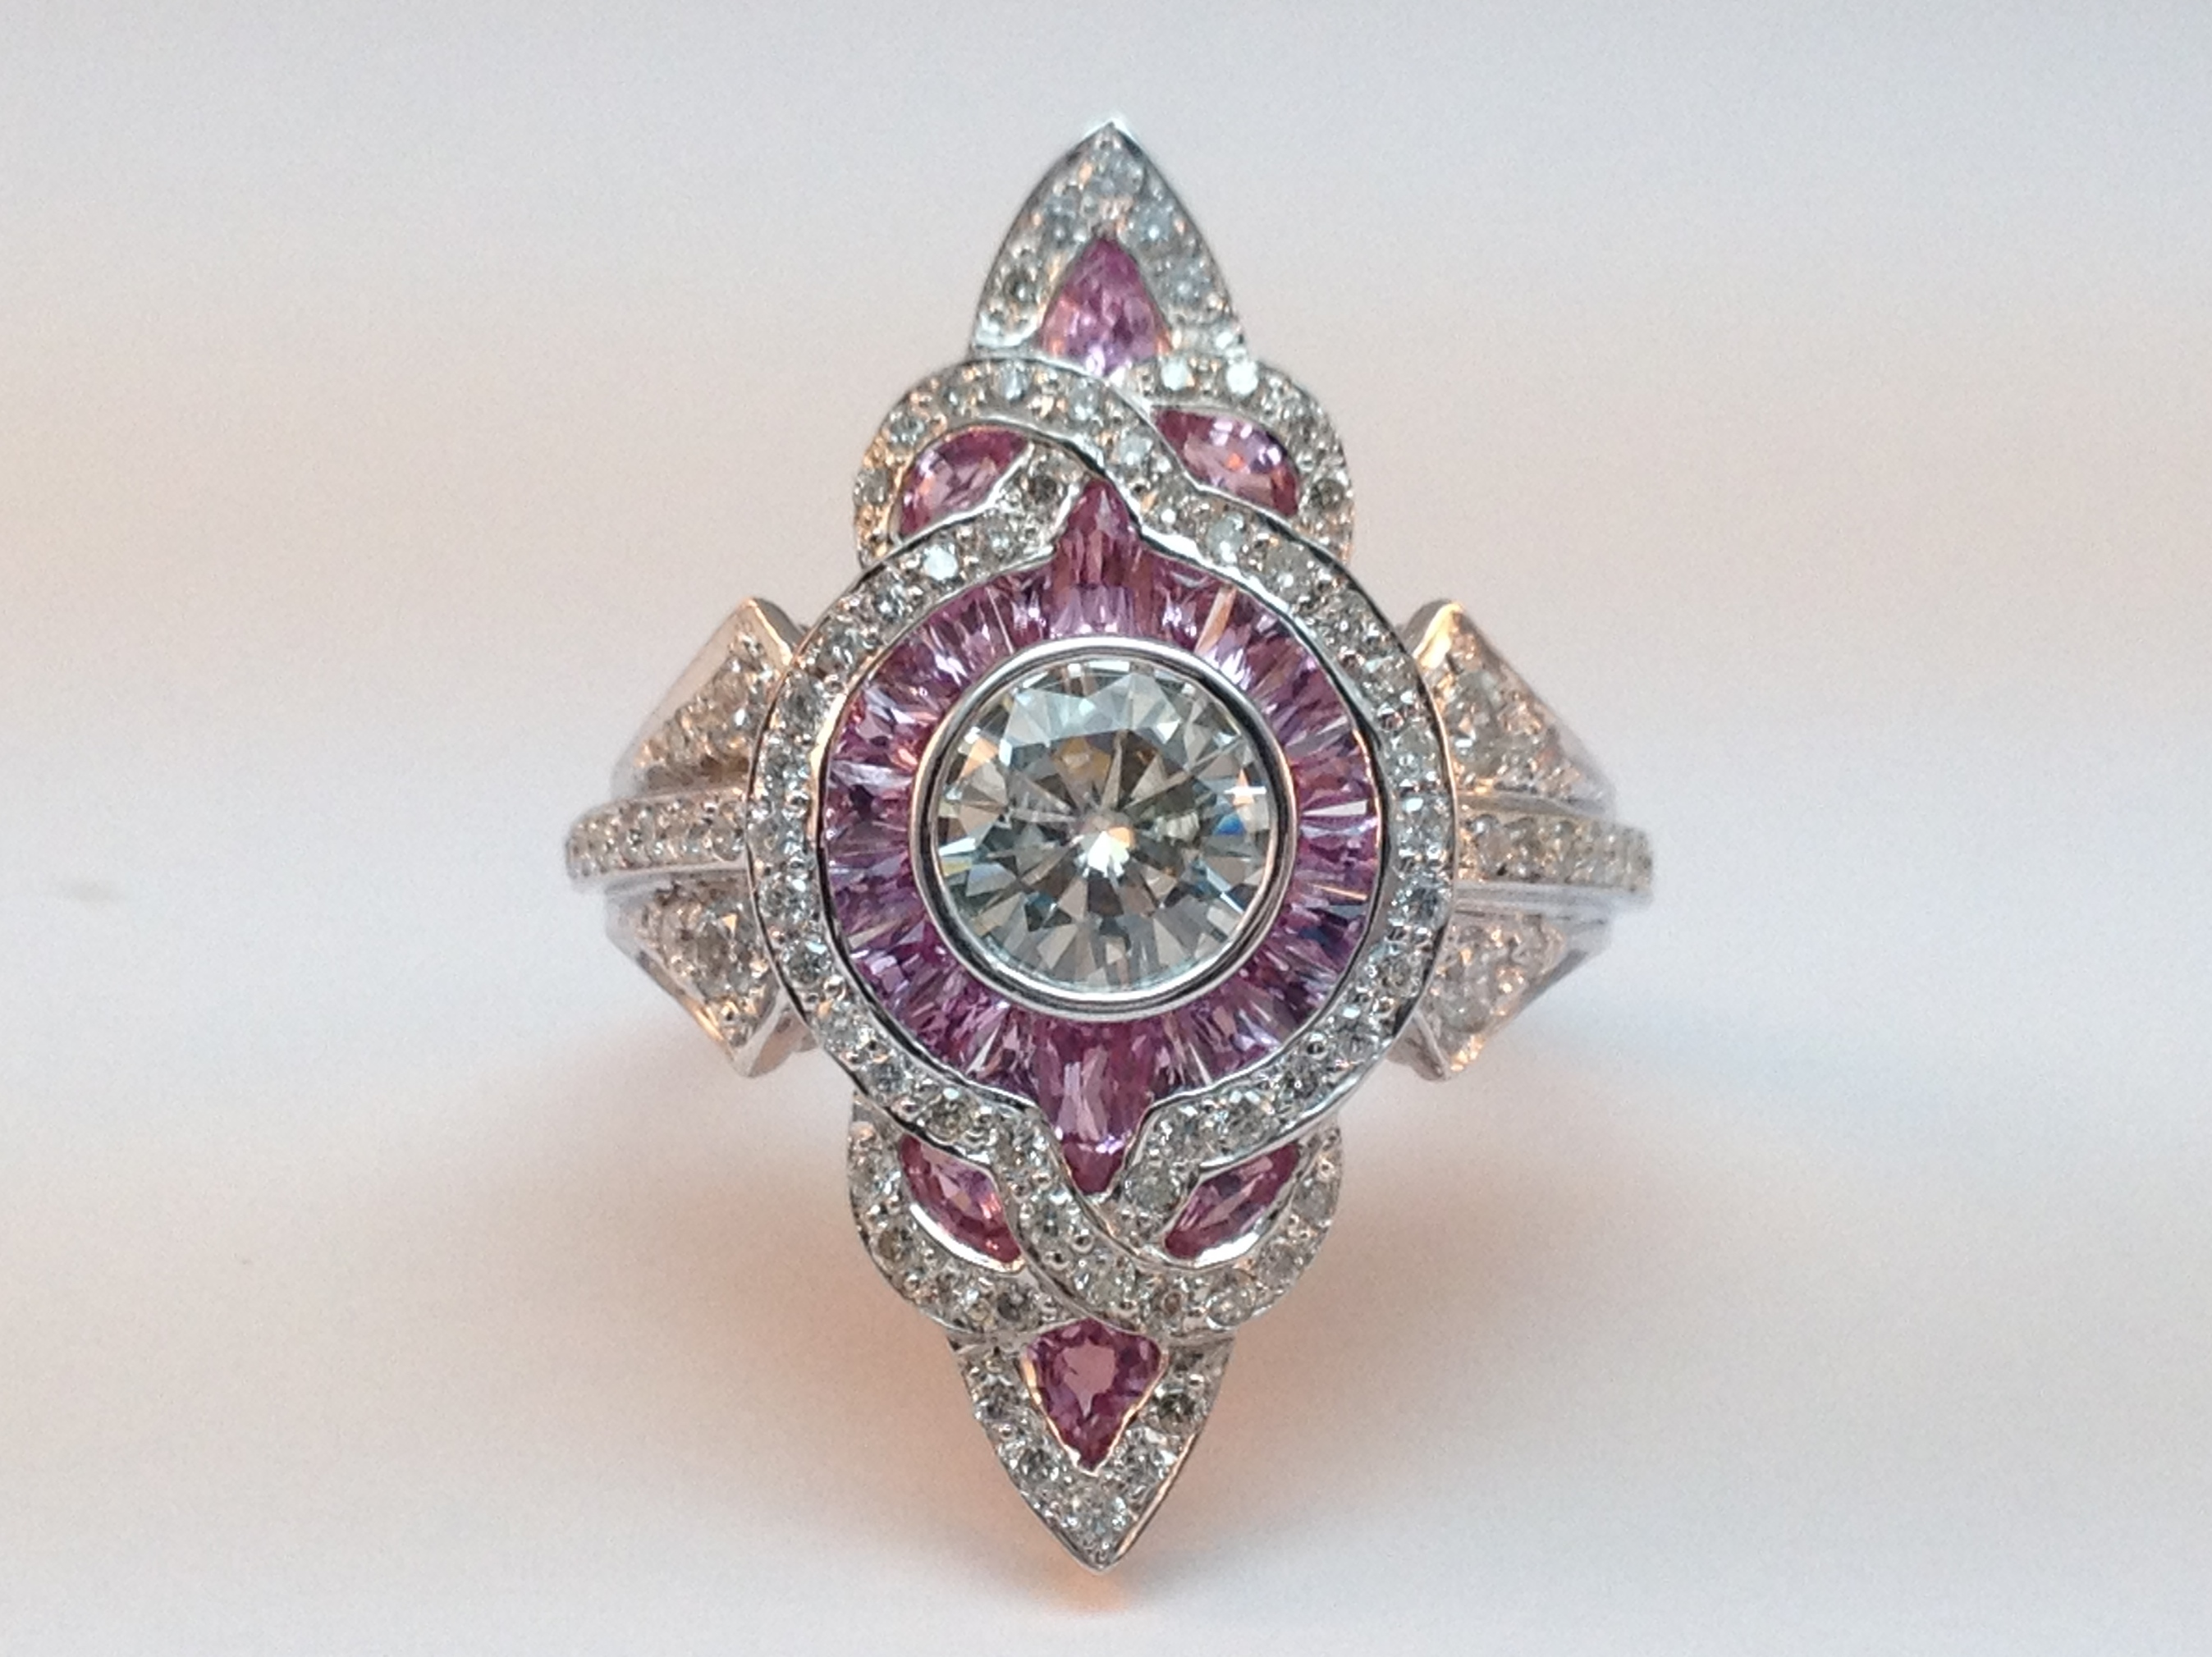 spectacular rings weddings ring asprey diamond tudor rose engagement trans pink